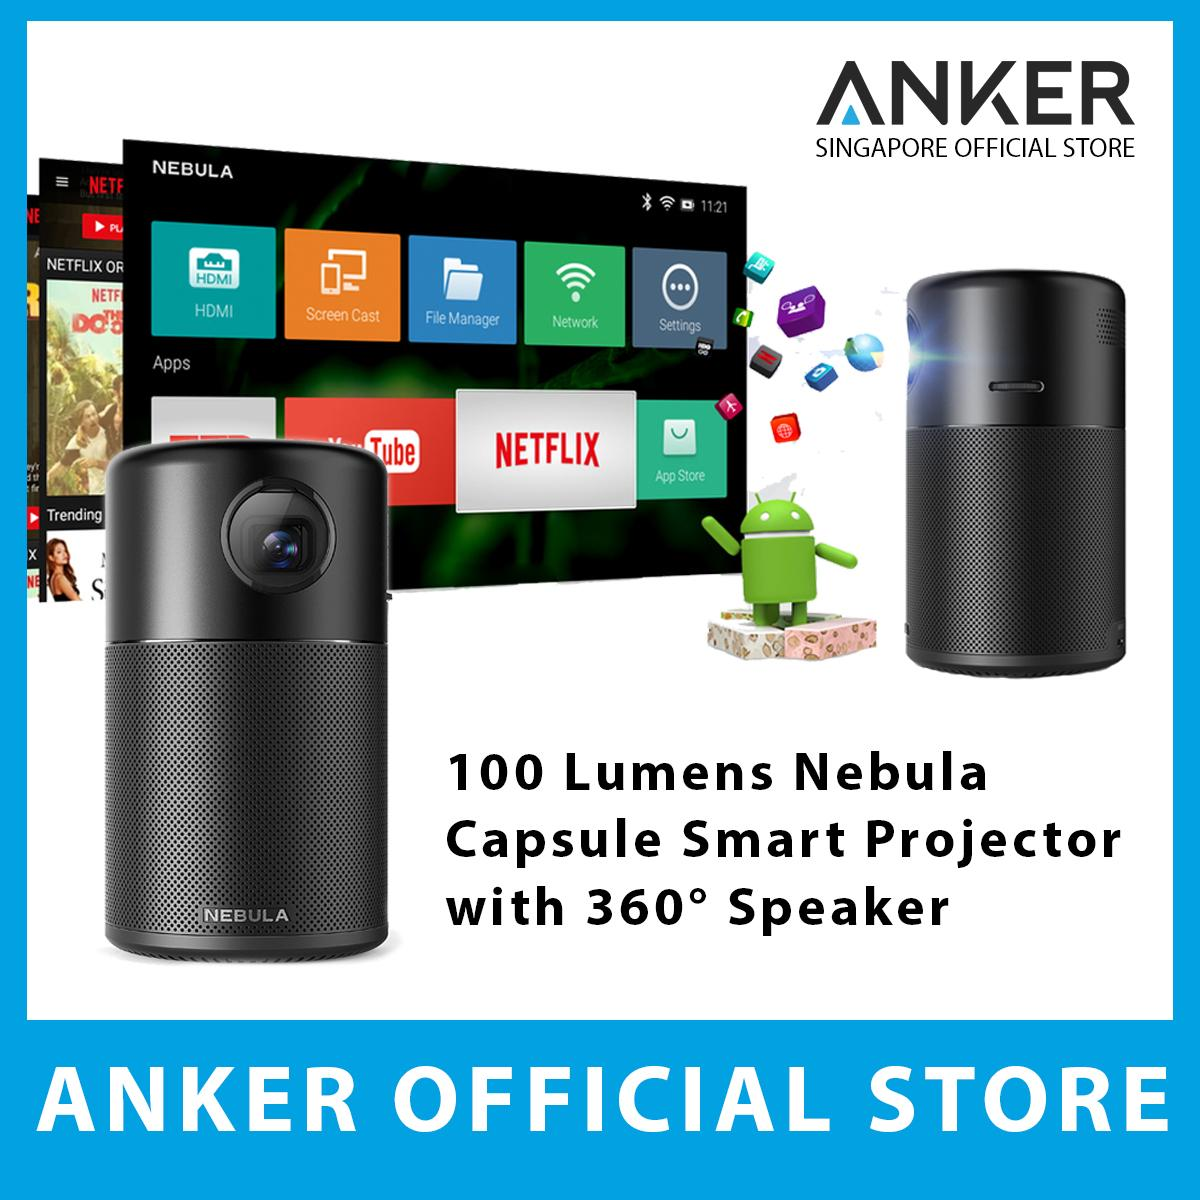 Best Offer Anker 100 Lumens Nebula Capsule Portable Smart Projector With 360° Speaker